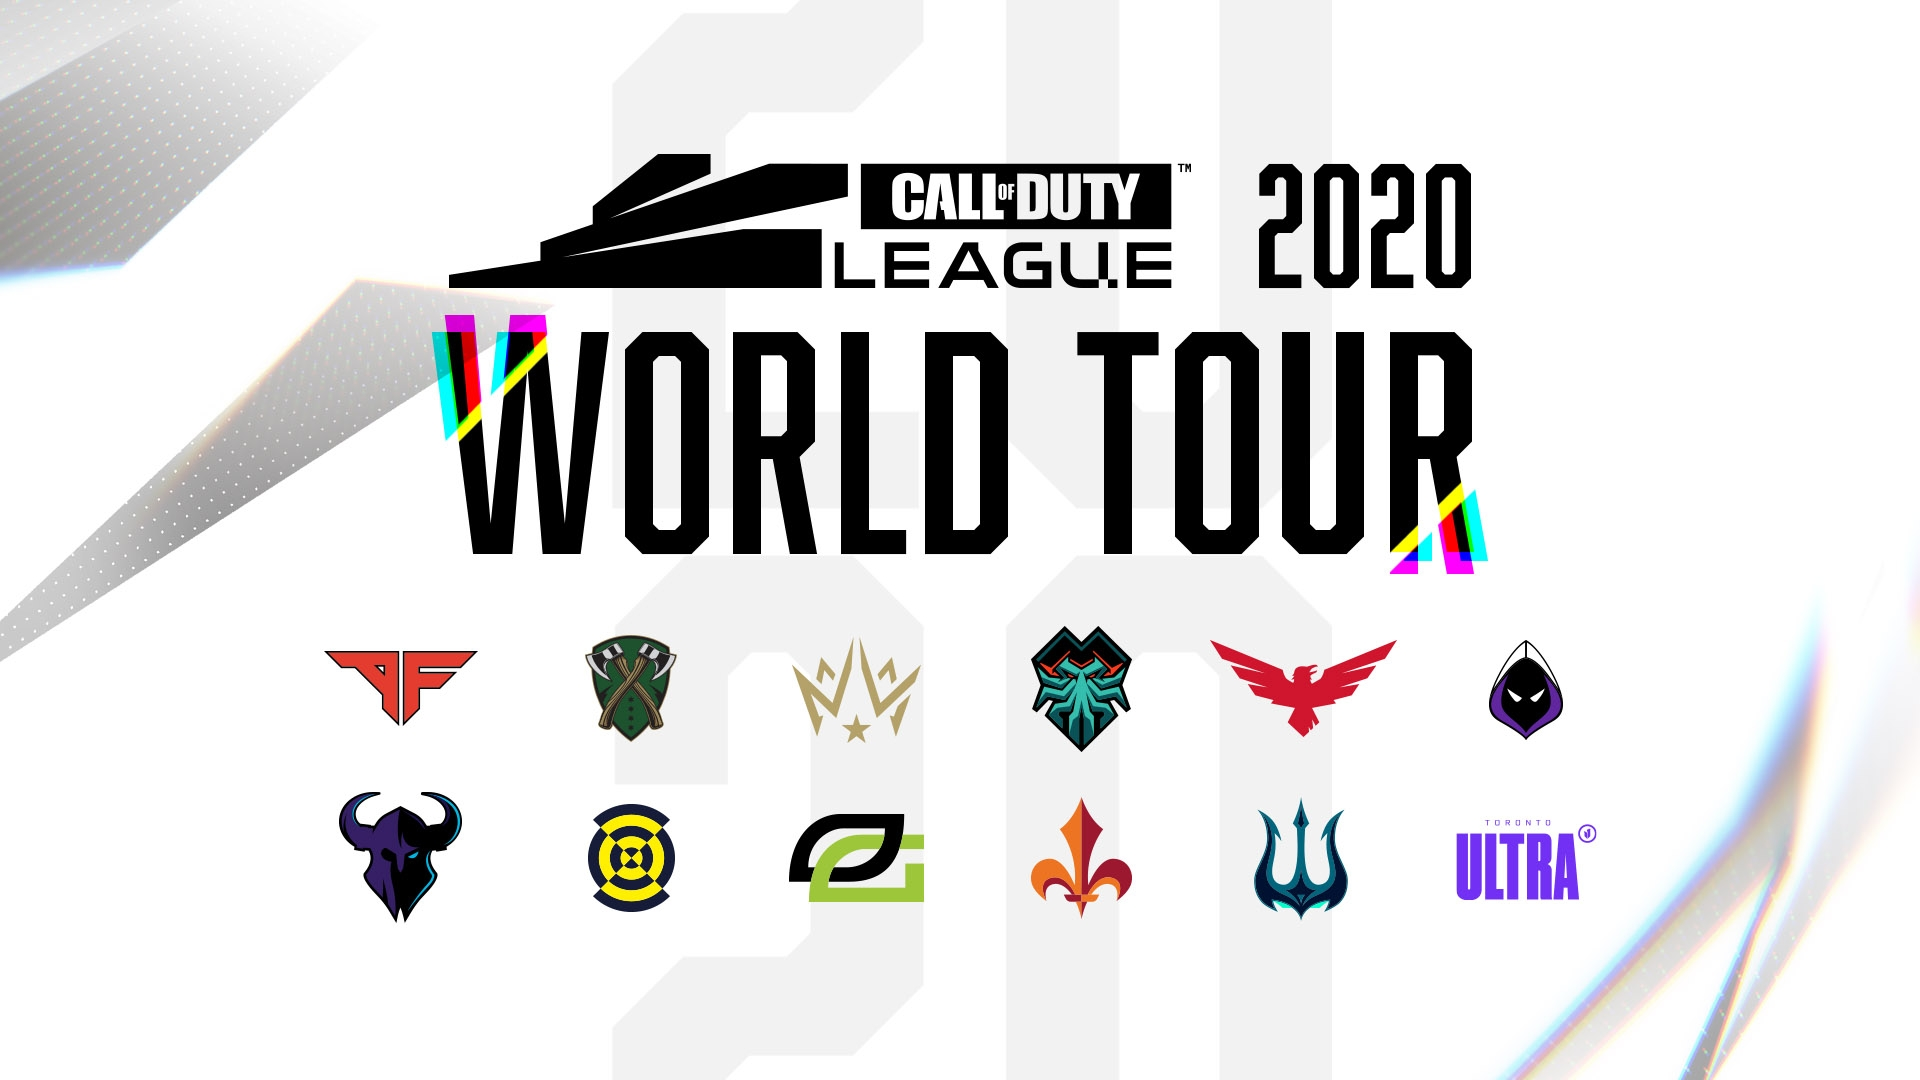 Calendrier World Tour 2020.Call Of Duty League Official Site Of The Call Of Duty League